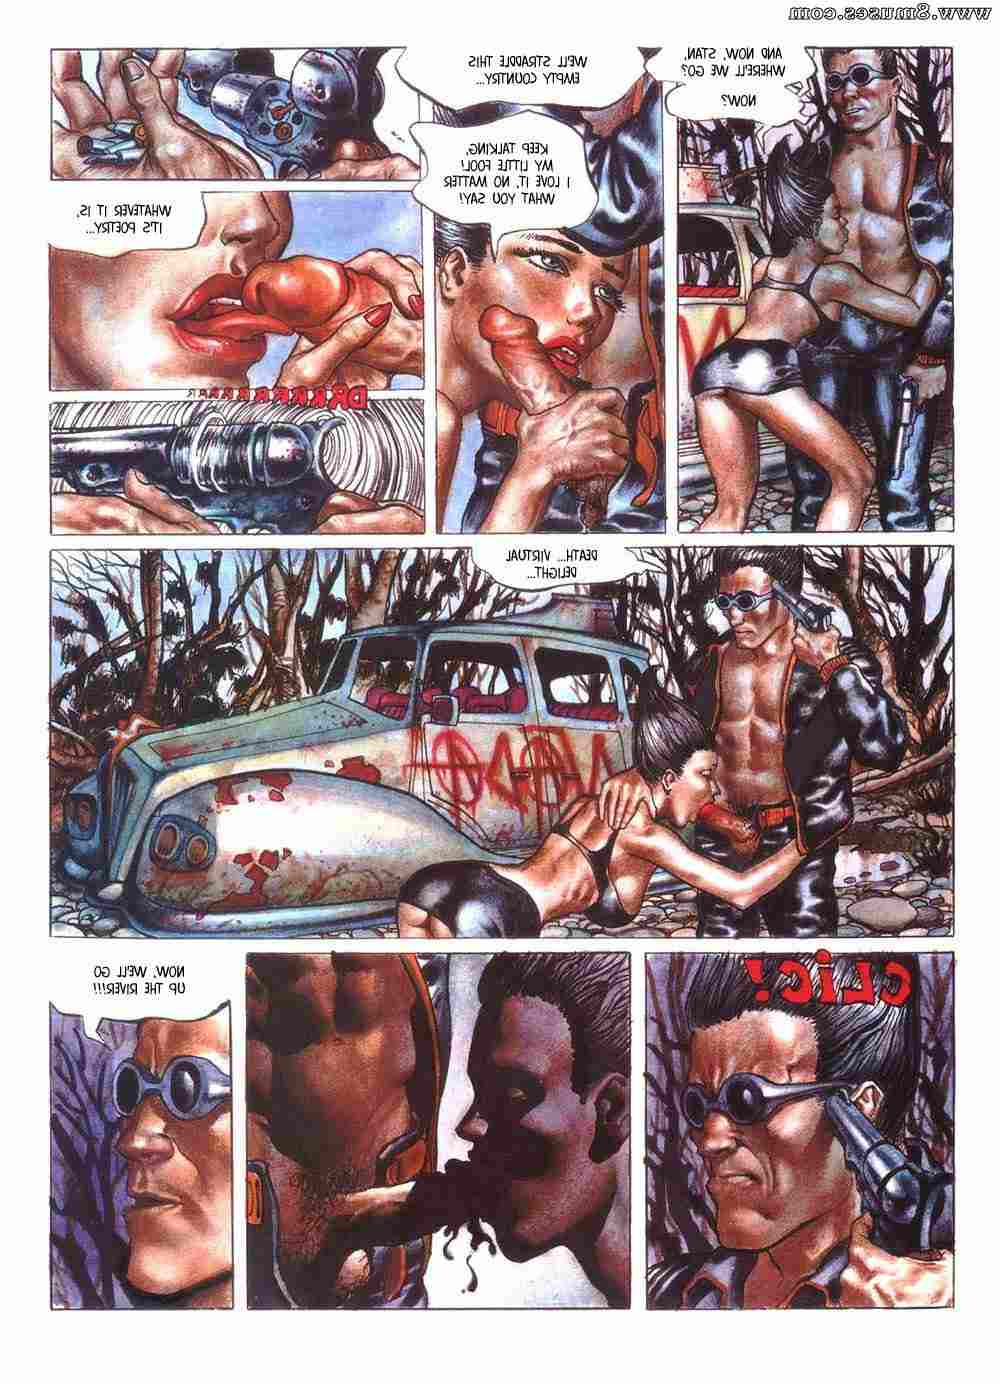 Various-Authors/Starzo/Mike-Mercury Mike_Mercury__8muses_-_Sex_and_Porn_Comics_26.jpg